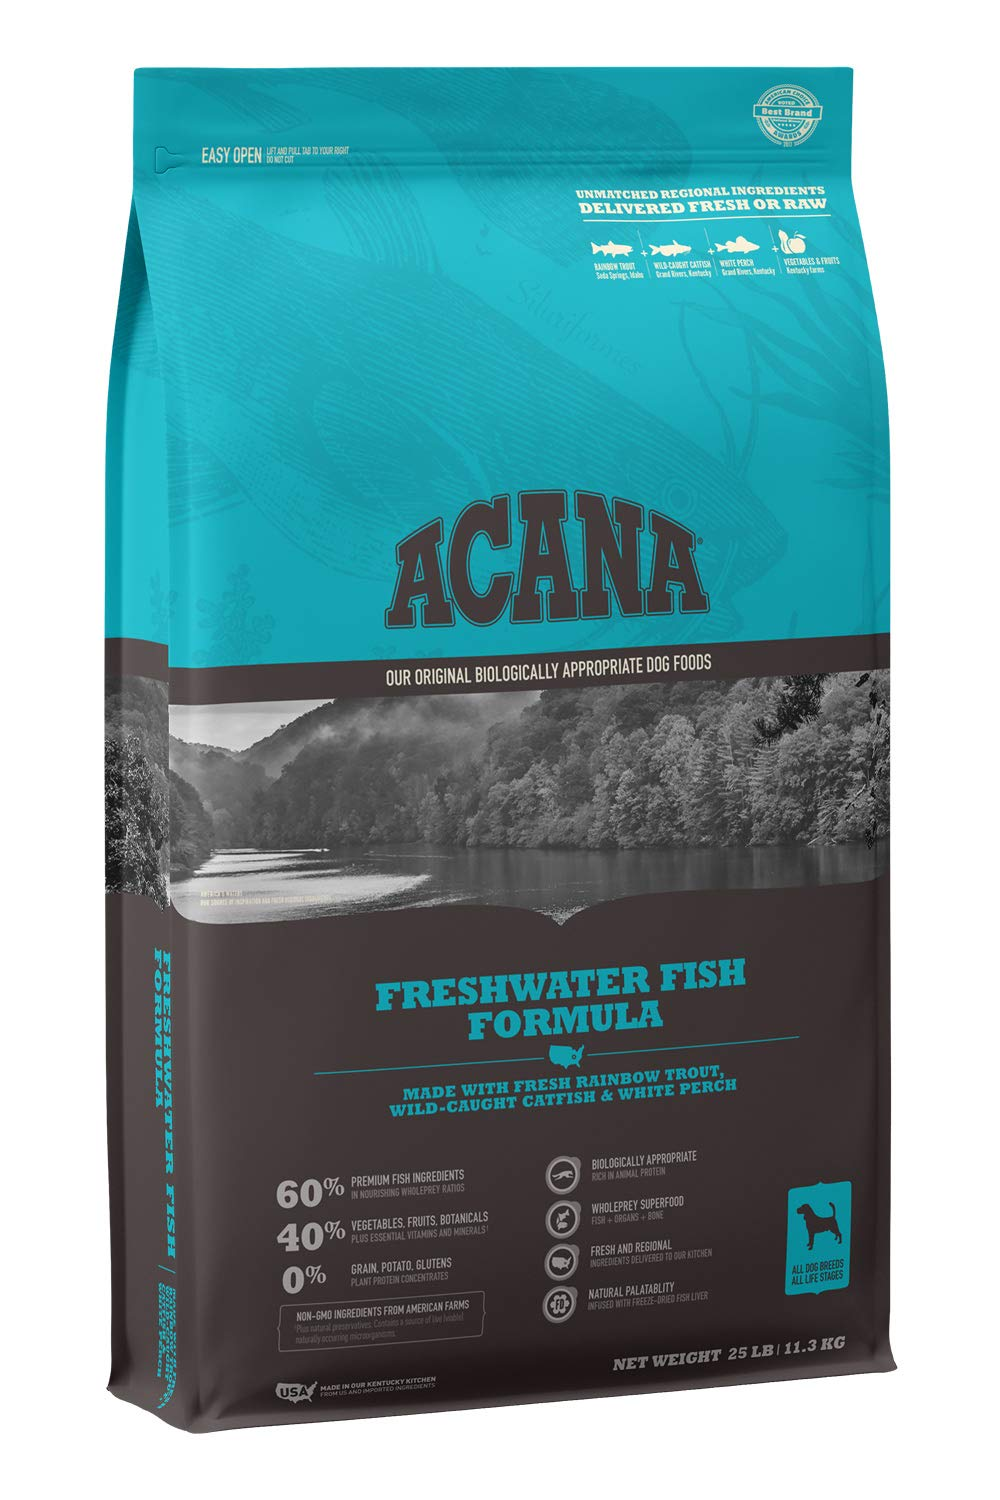 ACANA Heritage Dry Dog Food, Freshwater Fish, Biologically Appropriate & Grain Free by ACANA